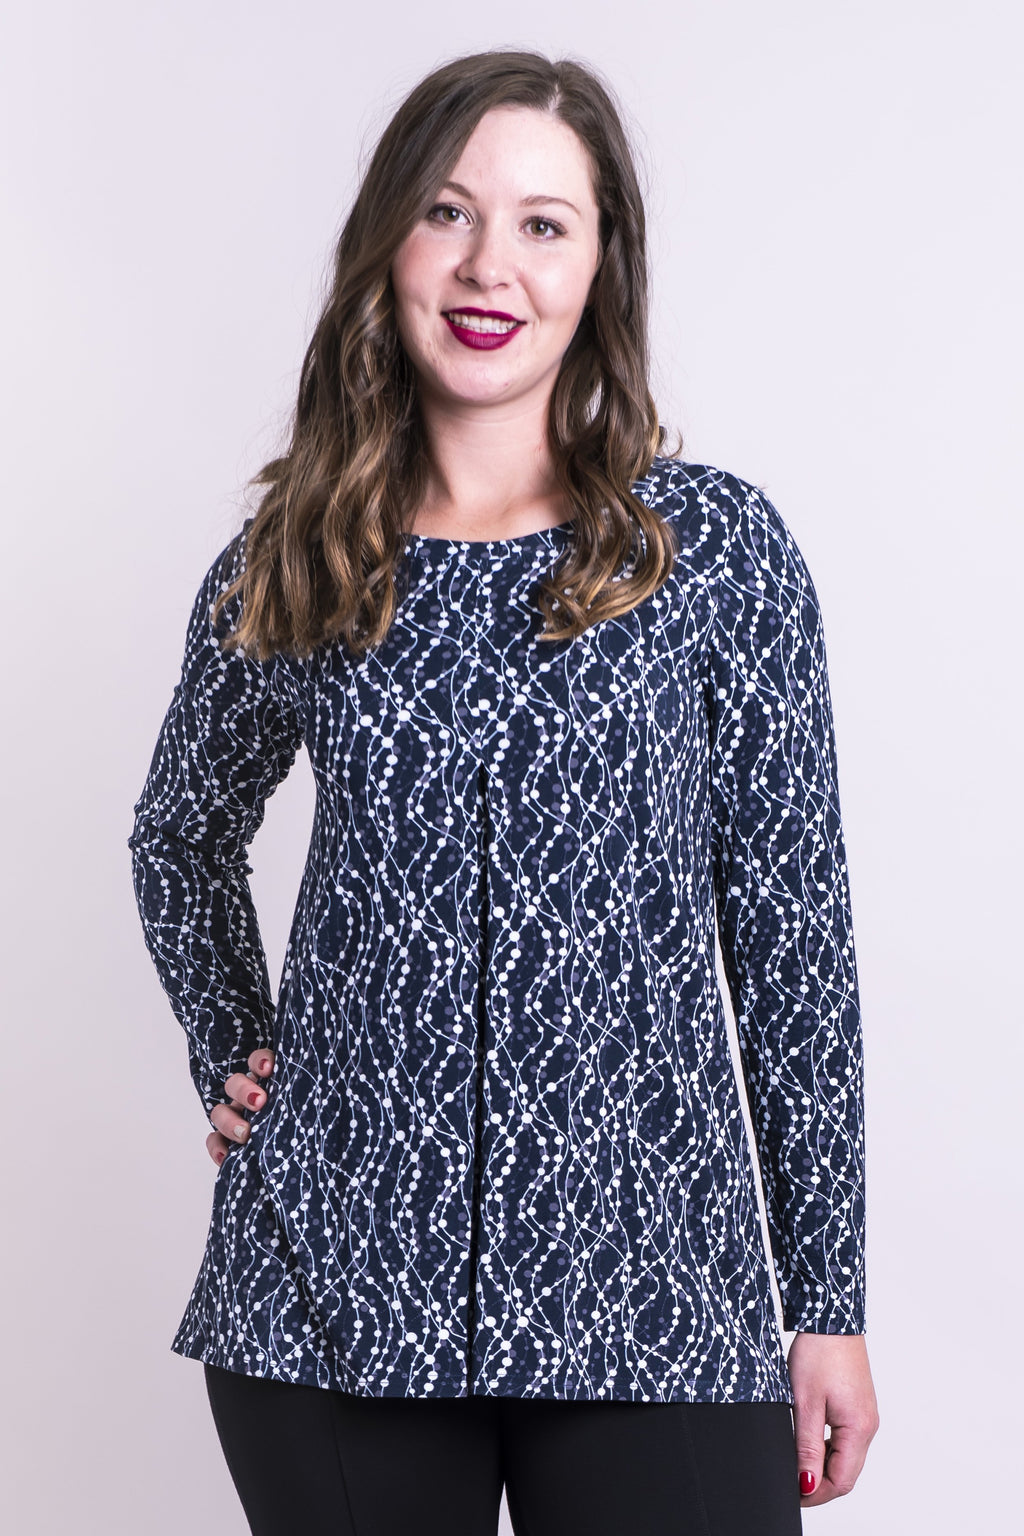 Franca Top, Interconnection, Bamboo - Blue Sky Clothing Co